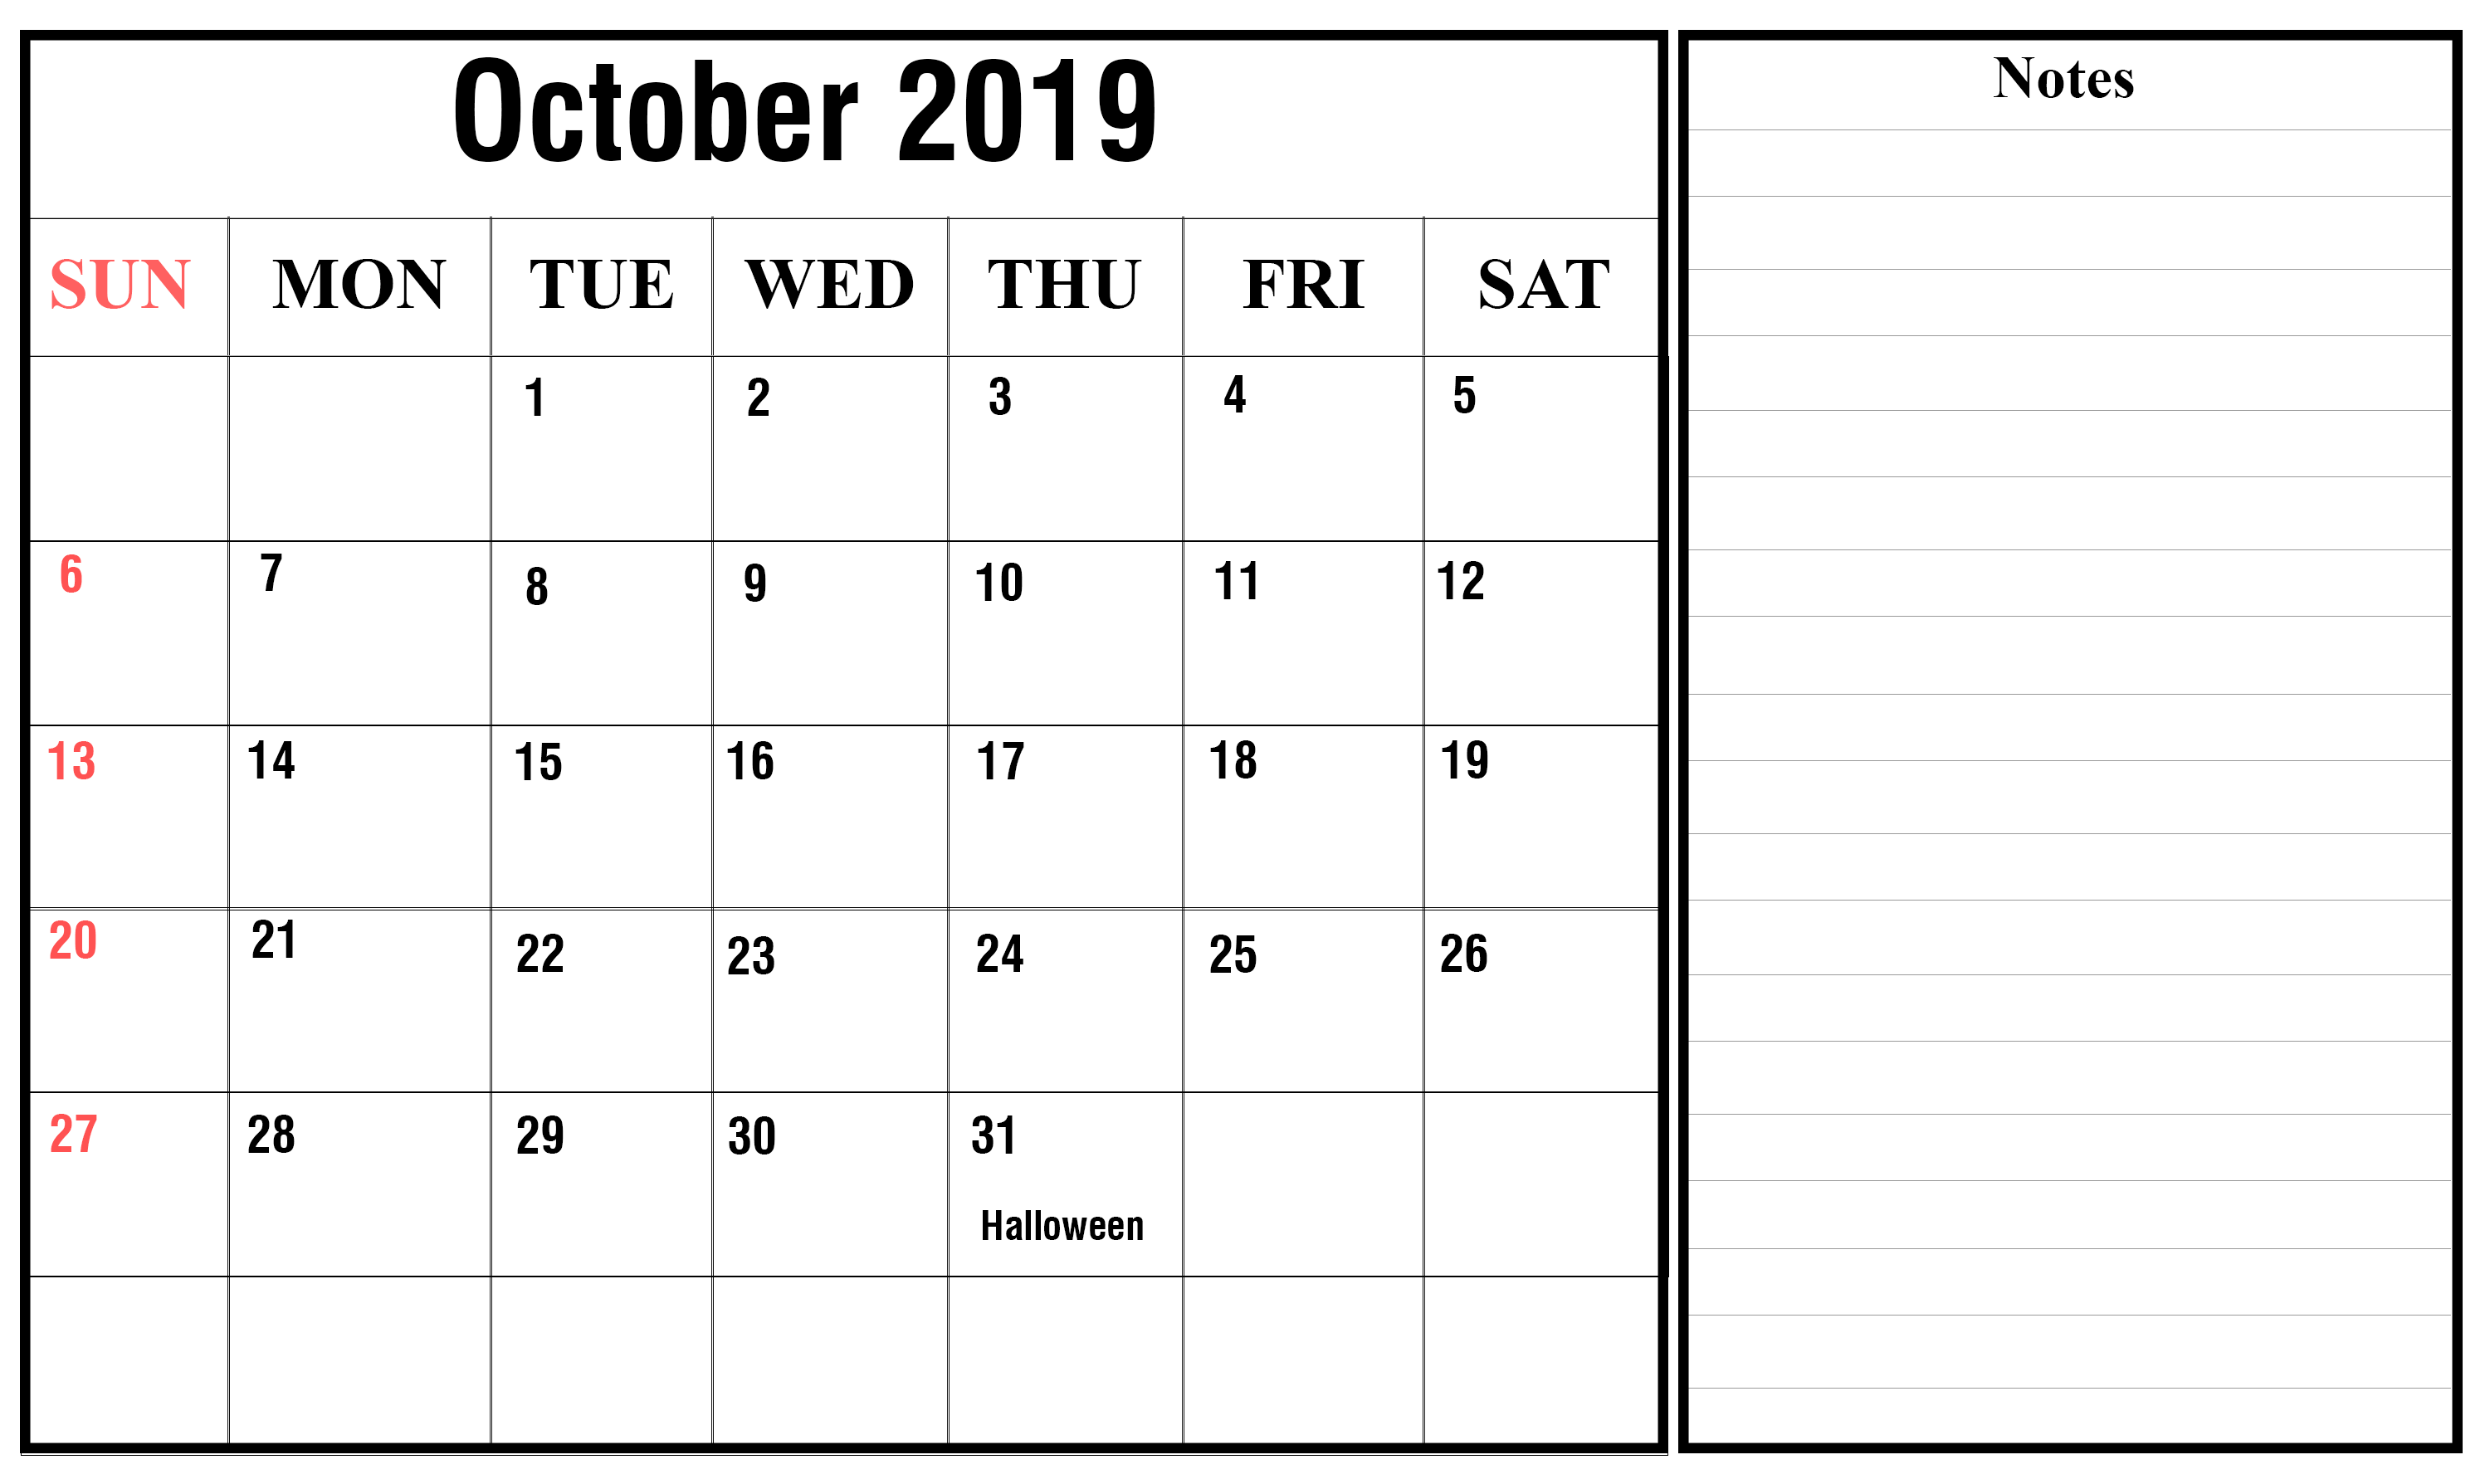 October 2019 Printable Calendar with Holidays